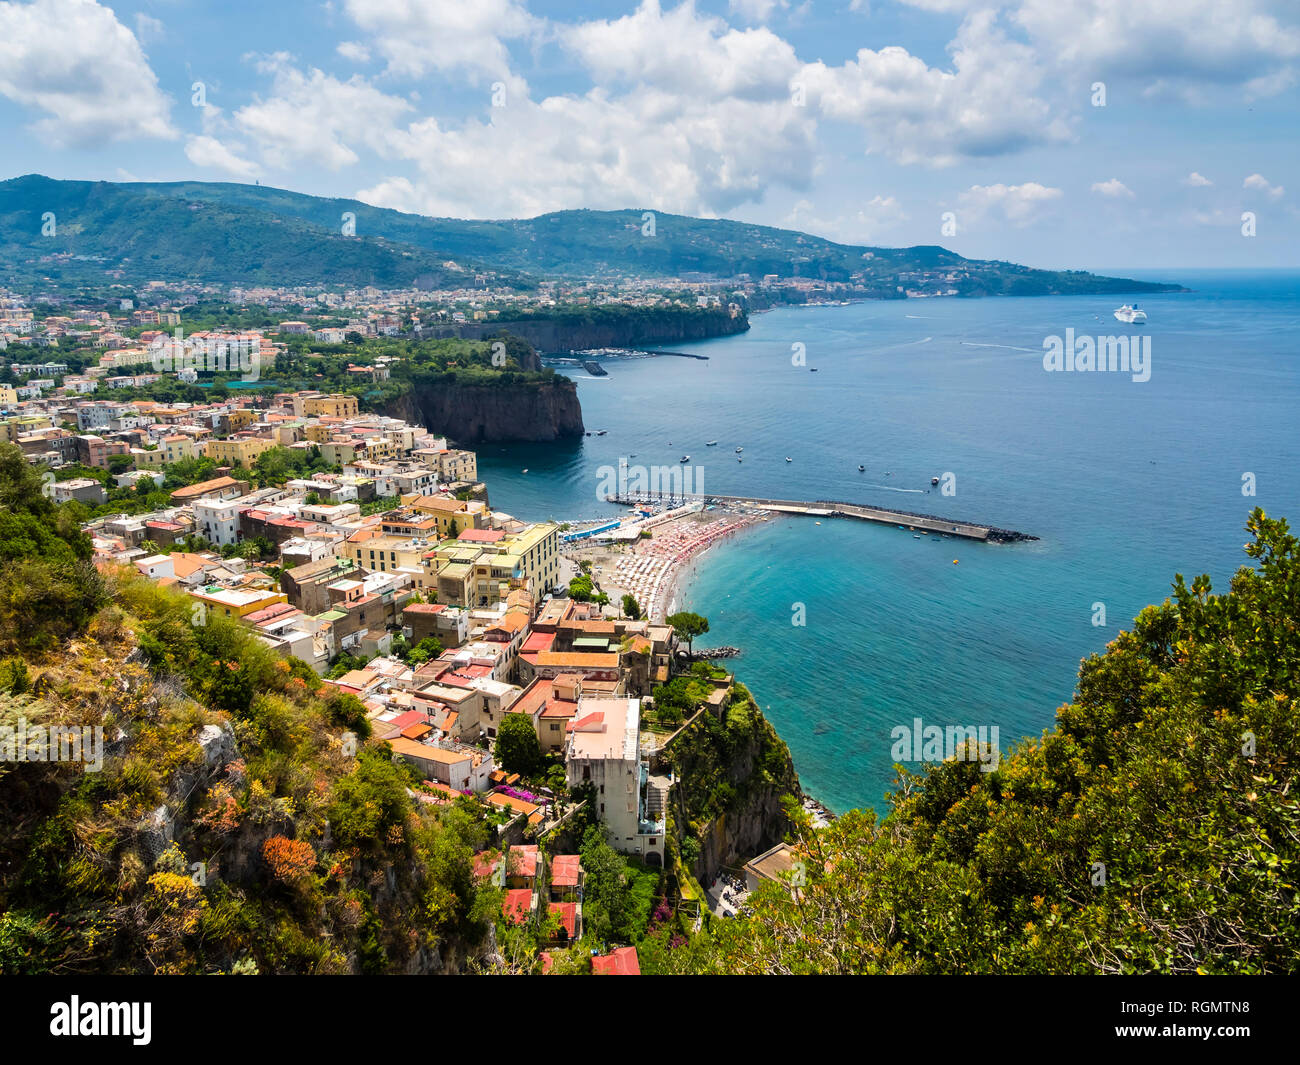 Italy, Campania, Naples, Gulf of Naples, Sorrento, View of cliff coast Meta di Sorrento - Stock Image